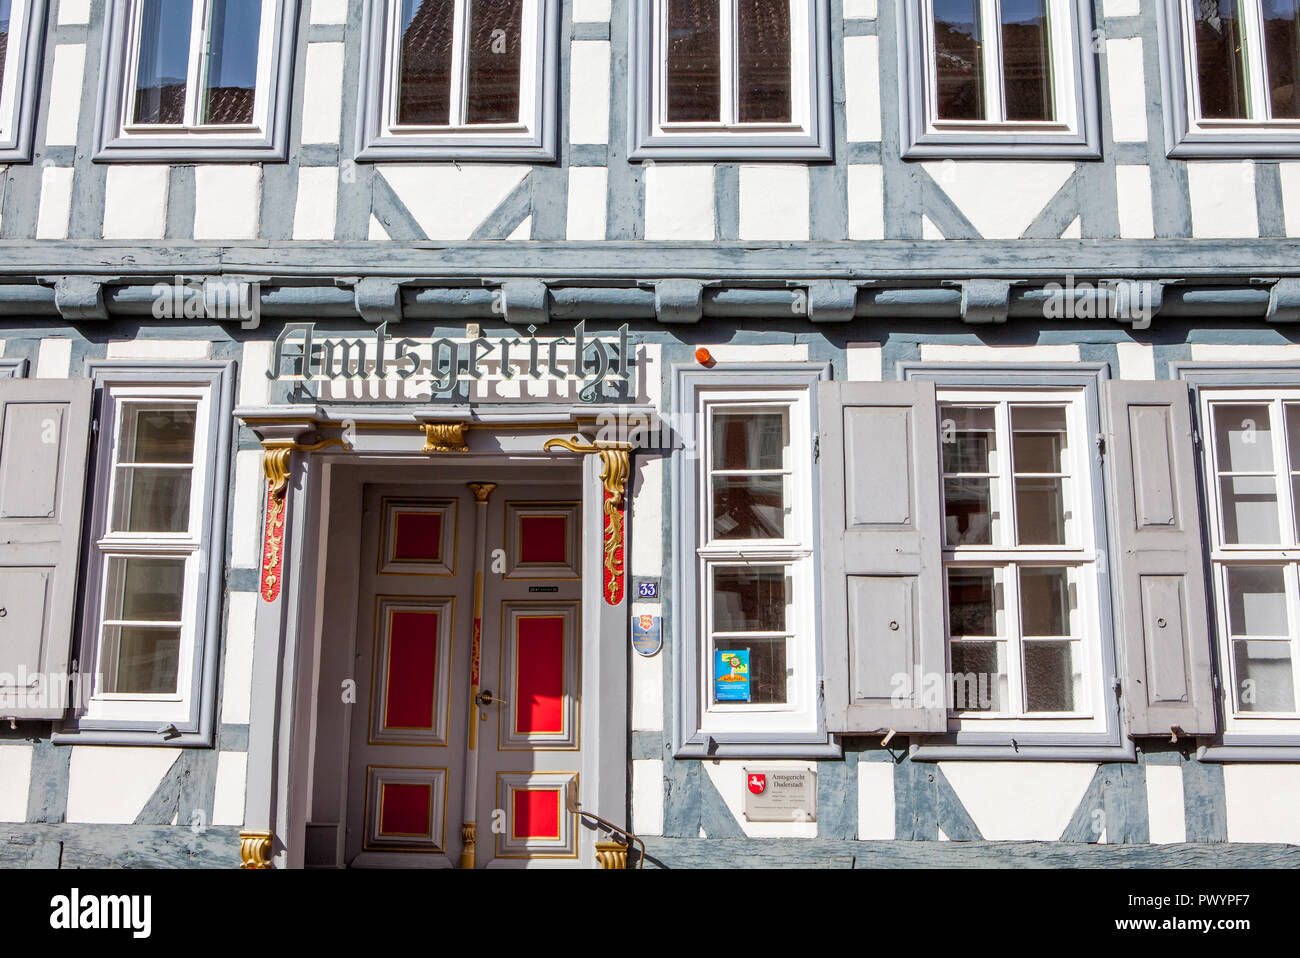 District Court, Half-timbered houses, Duderstadt, Lower Saxony, Germany, Europe - Stock Image